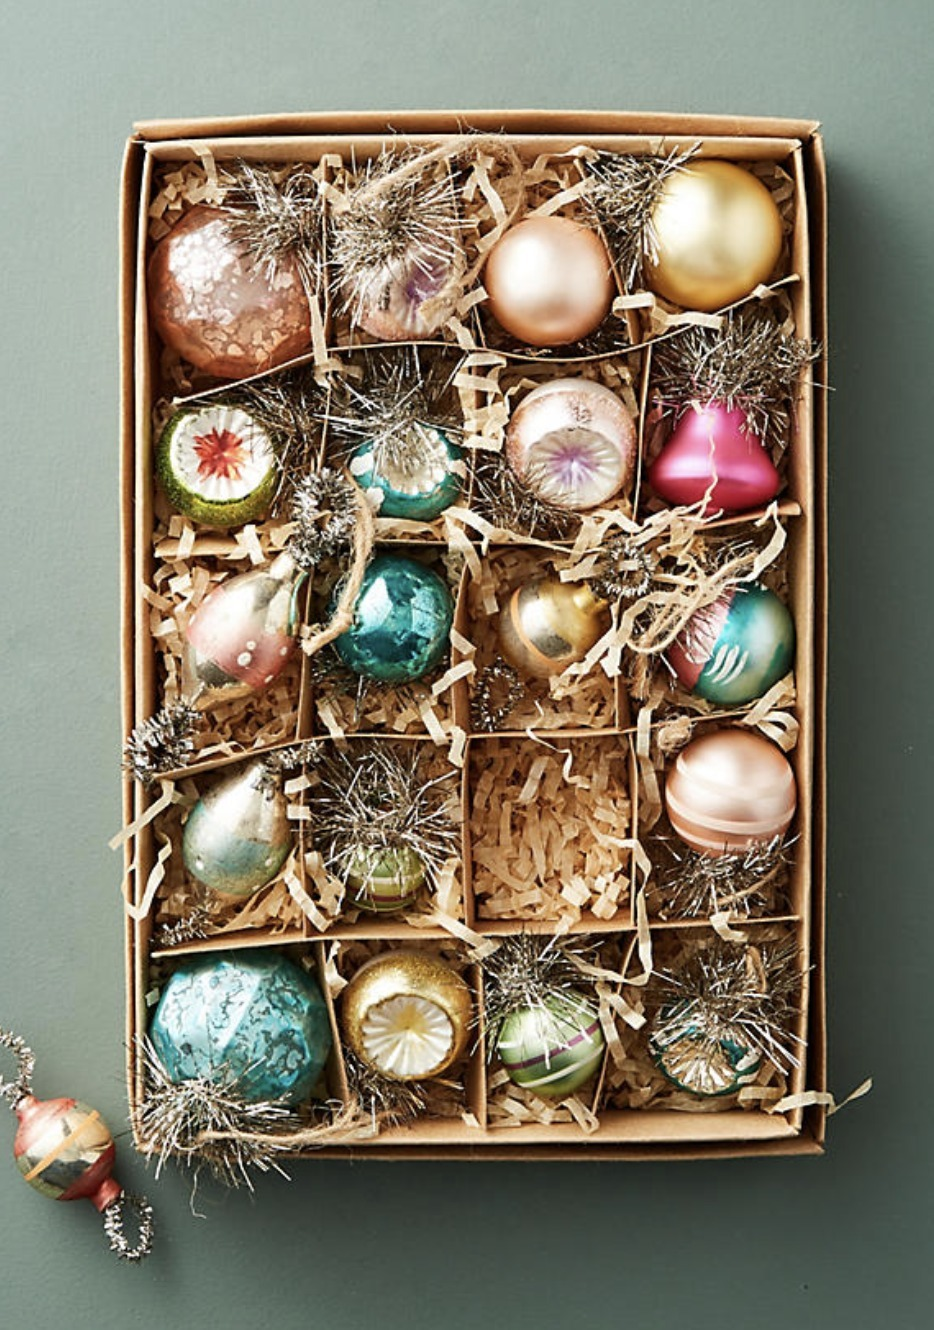 Vintage-Inspired Ornament Set